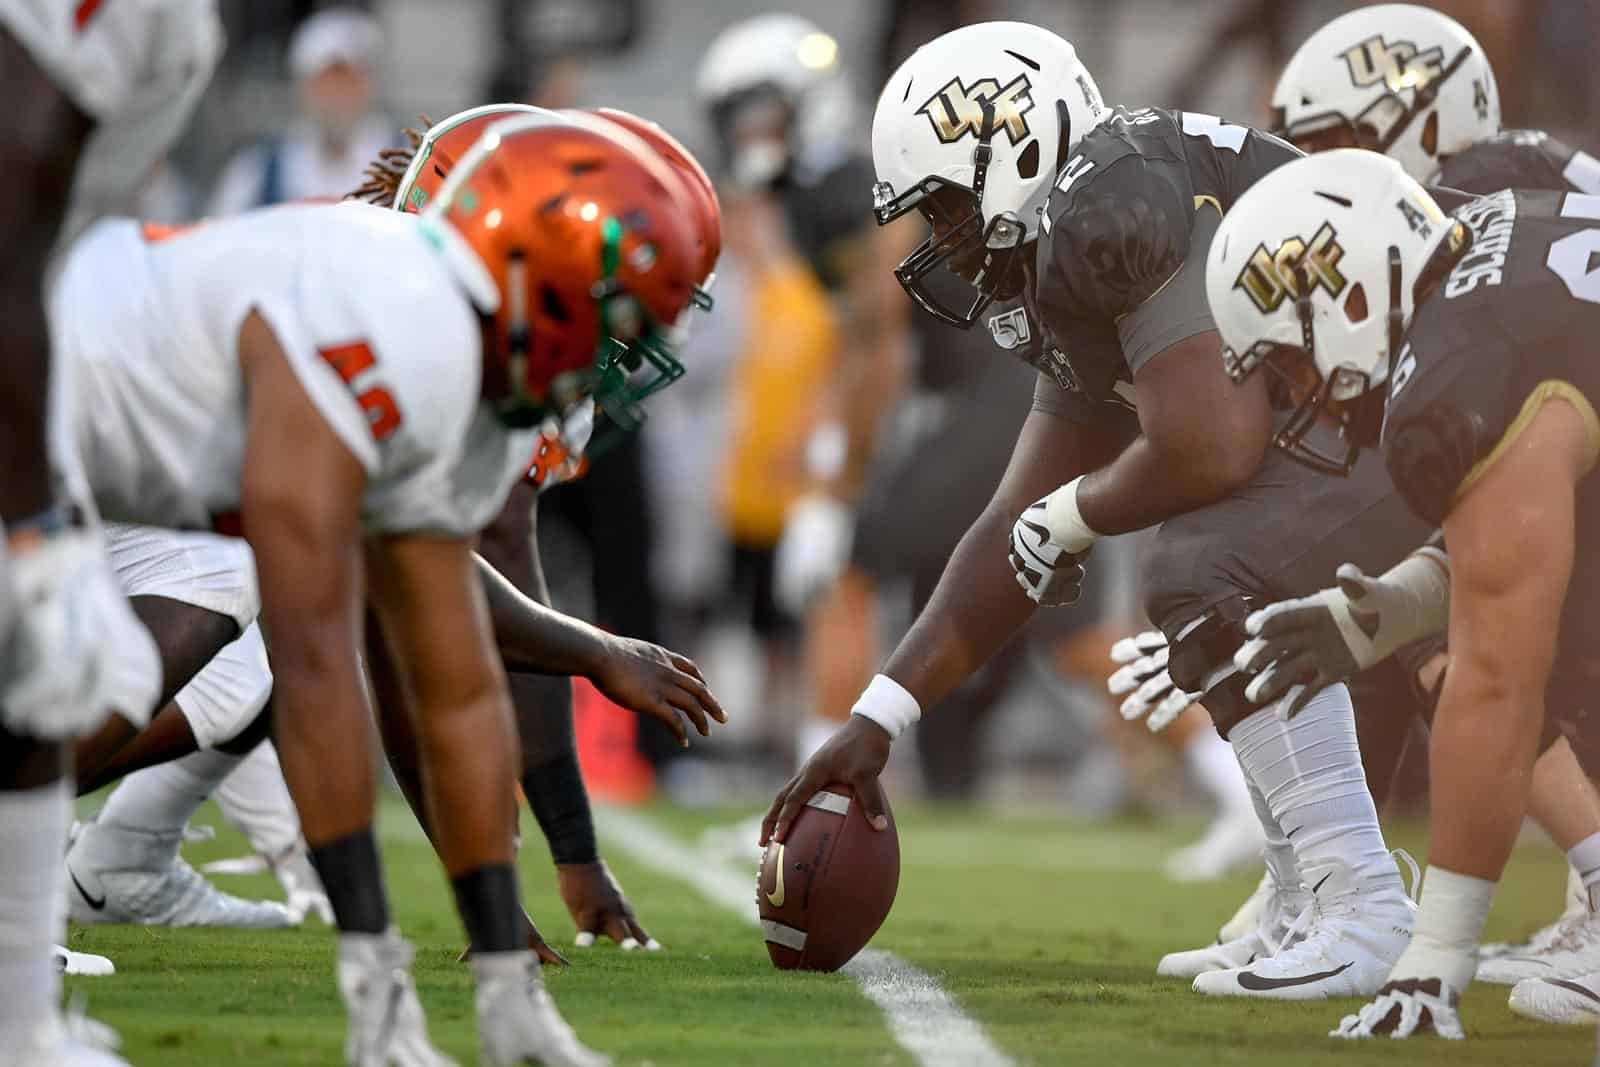 Ucf Football Schedule 2020.Ucf Adds Florida A M To Complete 2020 Non Conference